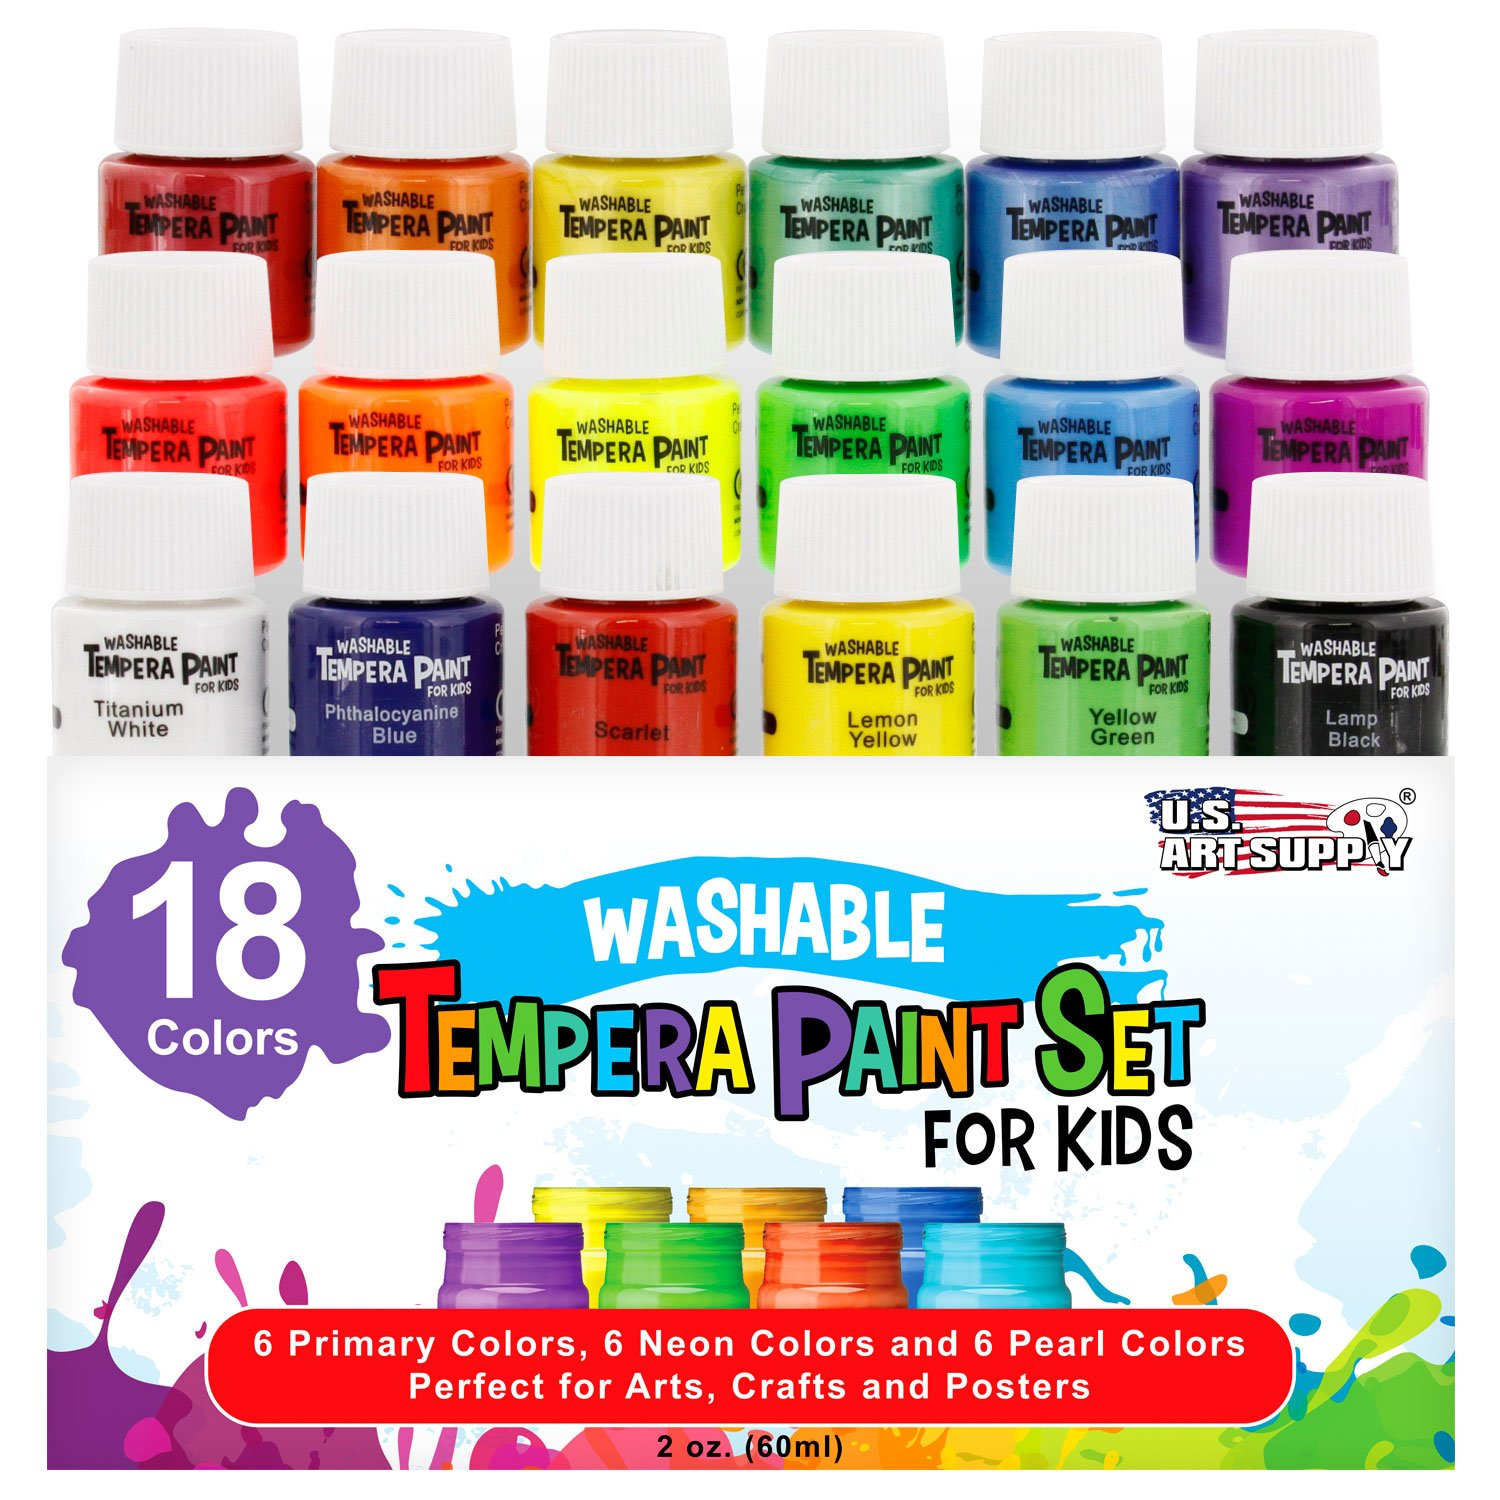 U.S. Art Supply Washable Tempera Paint For Kids, 18-Piece